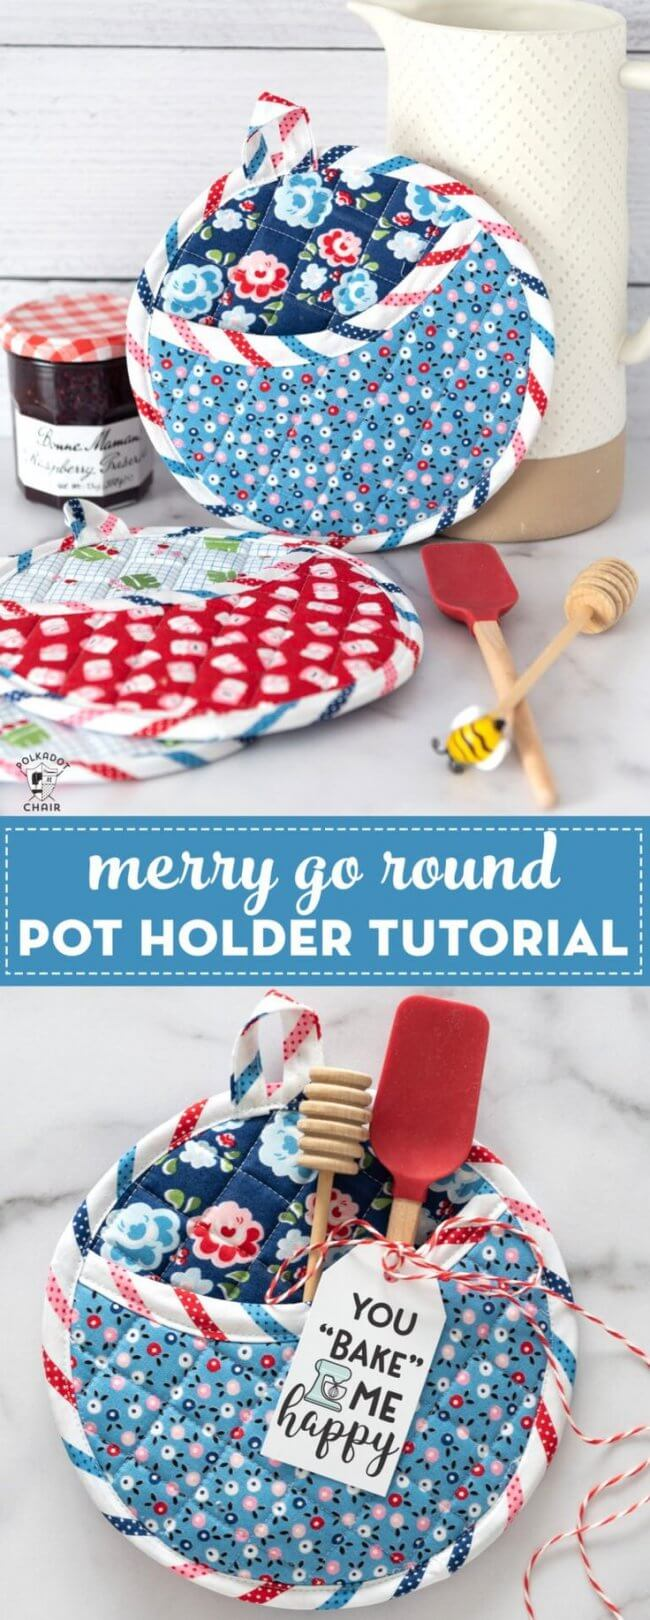 How to Make Round Quilted Potholders